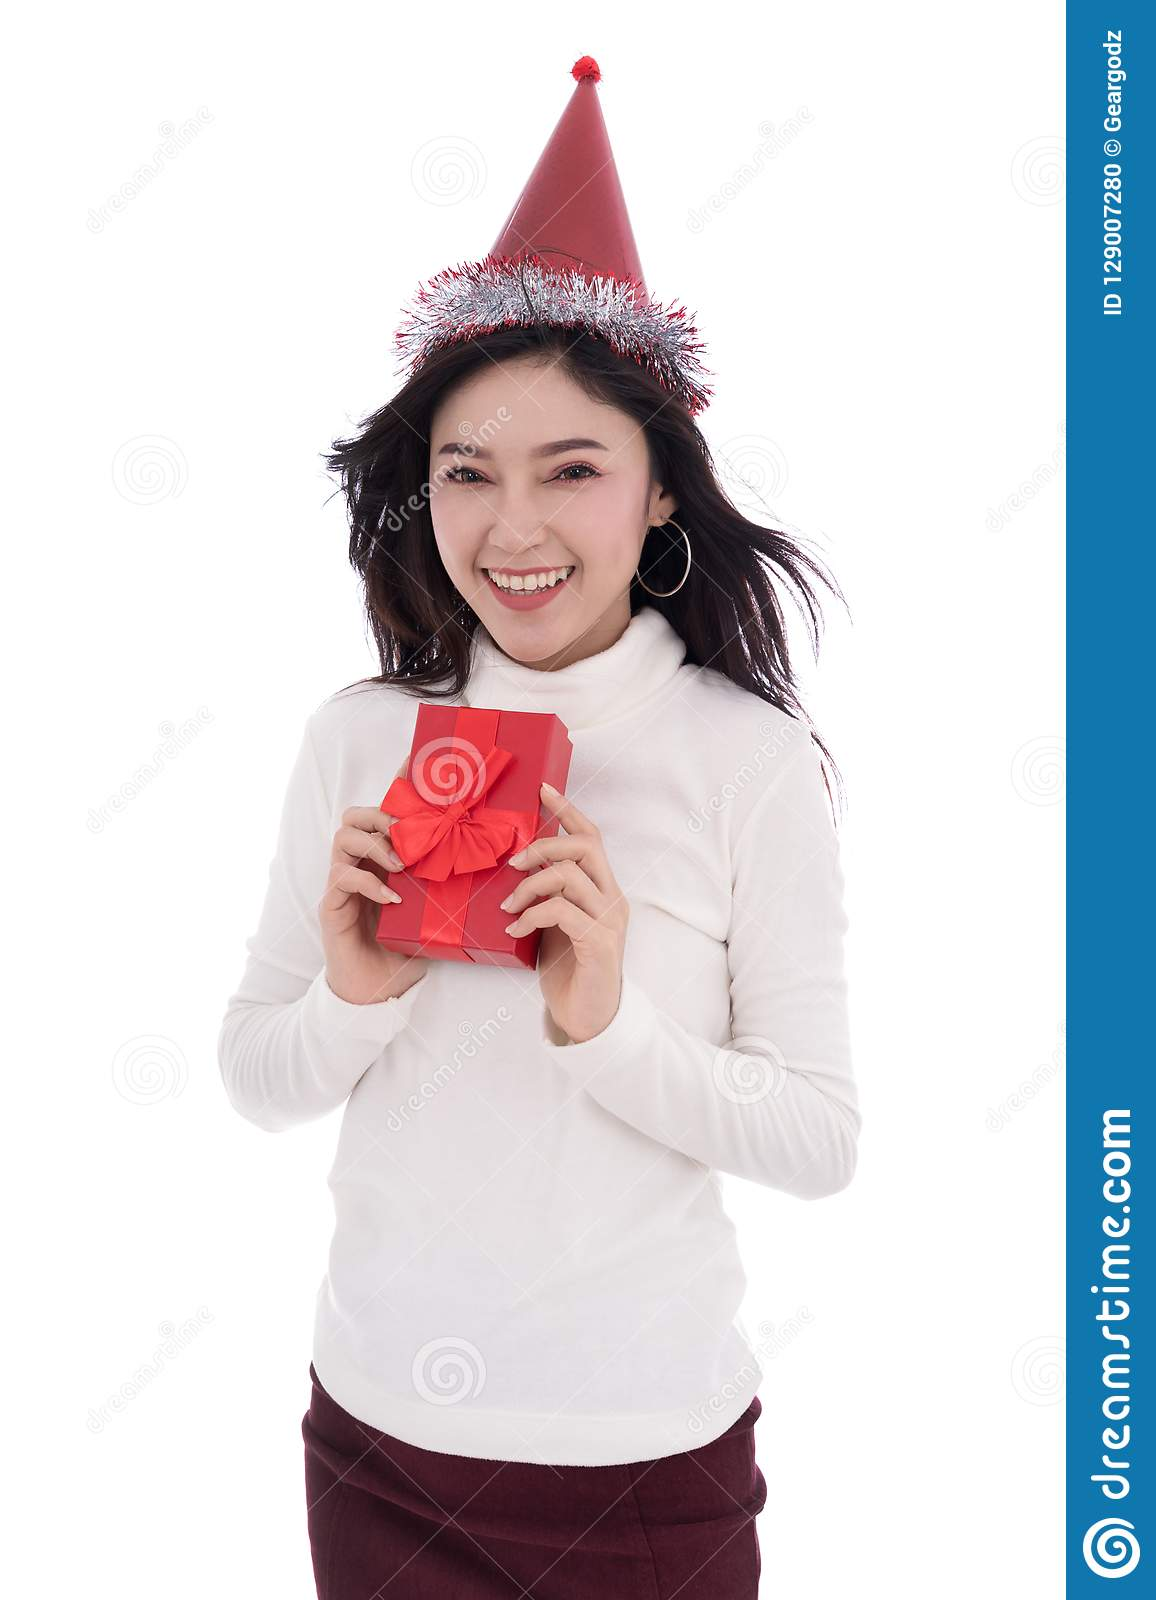 happy woman with hat and holding a red christmas gift box isolated on a white background